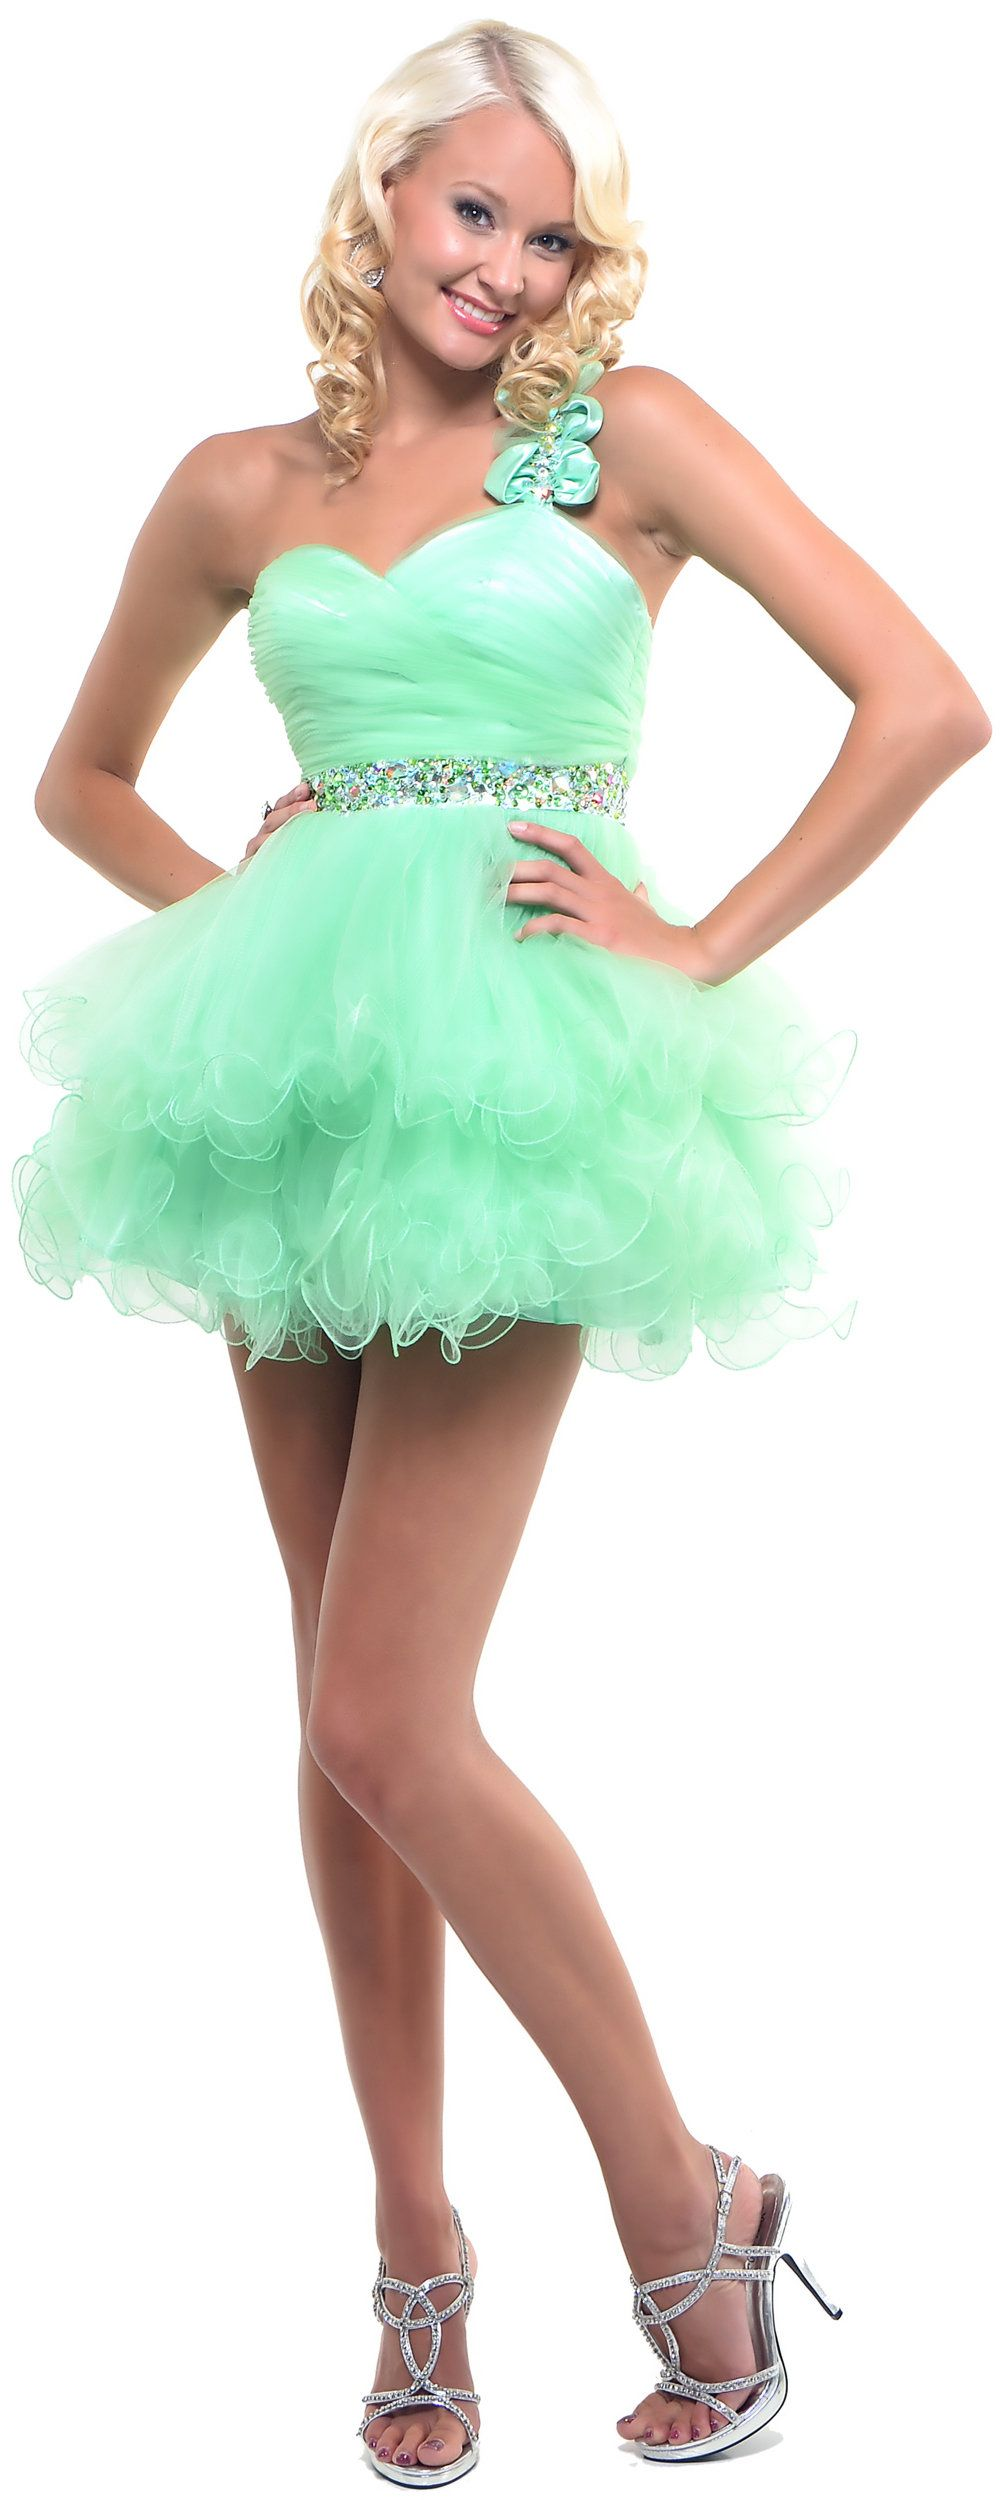 Fashion style One mint shoulder green prom dress for lady